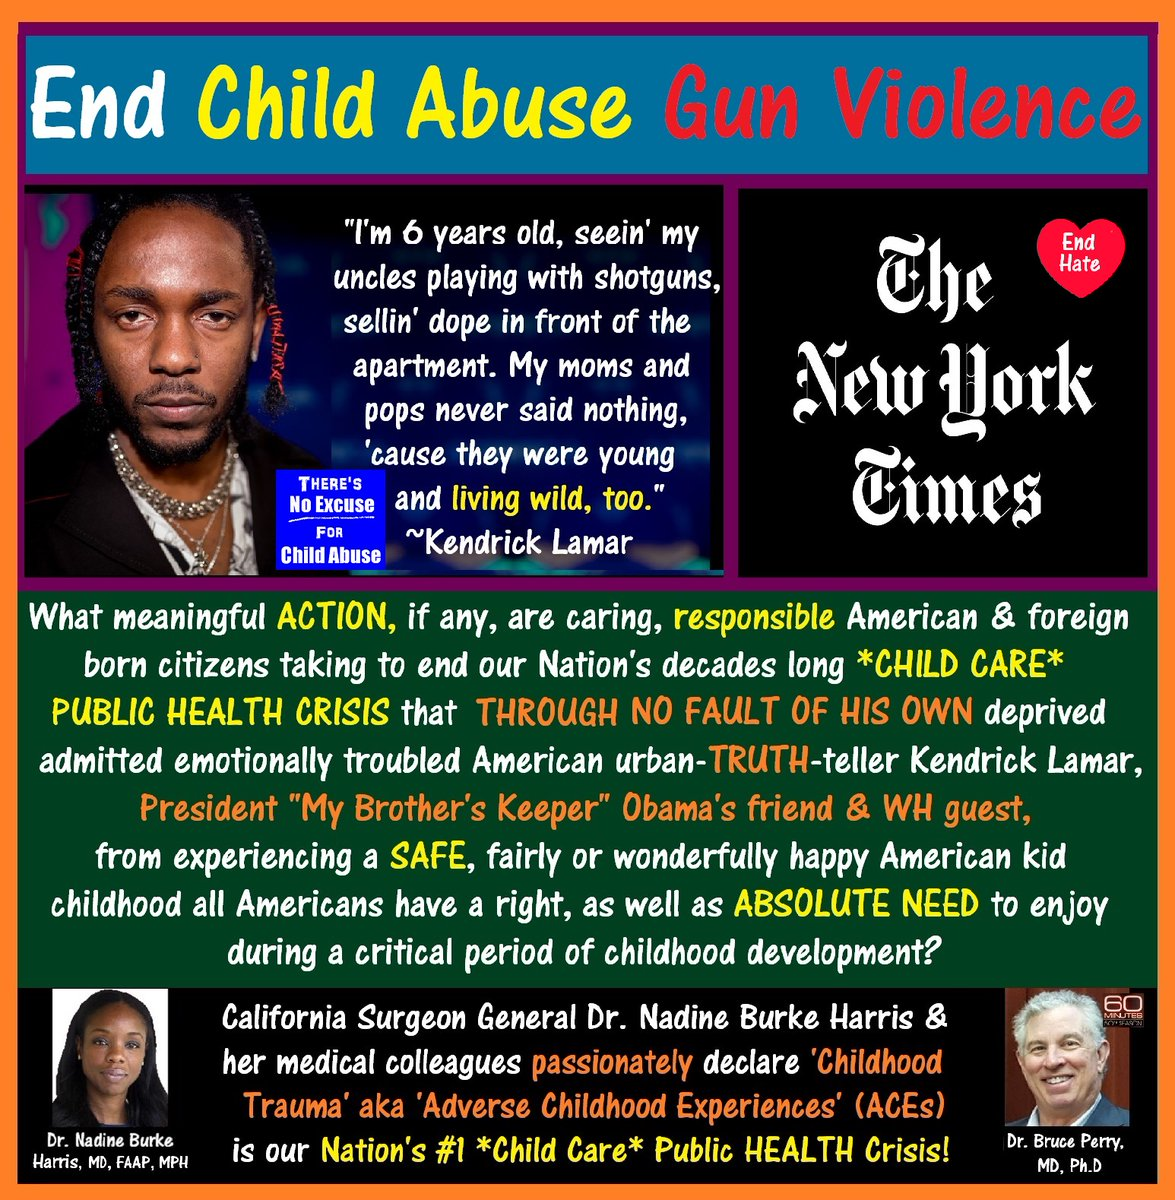 #nytimesendorsement  Hi. Would #TheNewYorkTimes increase circulation if w/ the intention of improving its neighbor's HEALTH & #QualityOfLife, #TheTimes asked all responsible, caring #AmericanCitizens to seriously consider the following #ChildCare health related issues >>>  Peace.